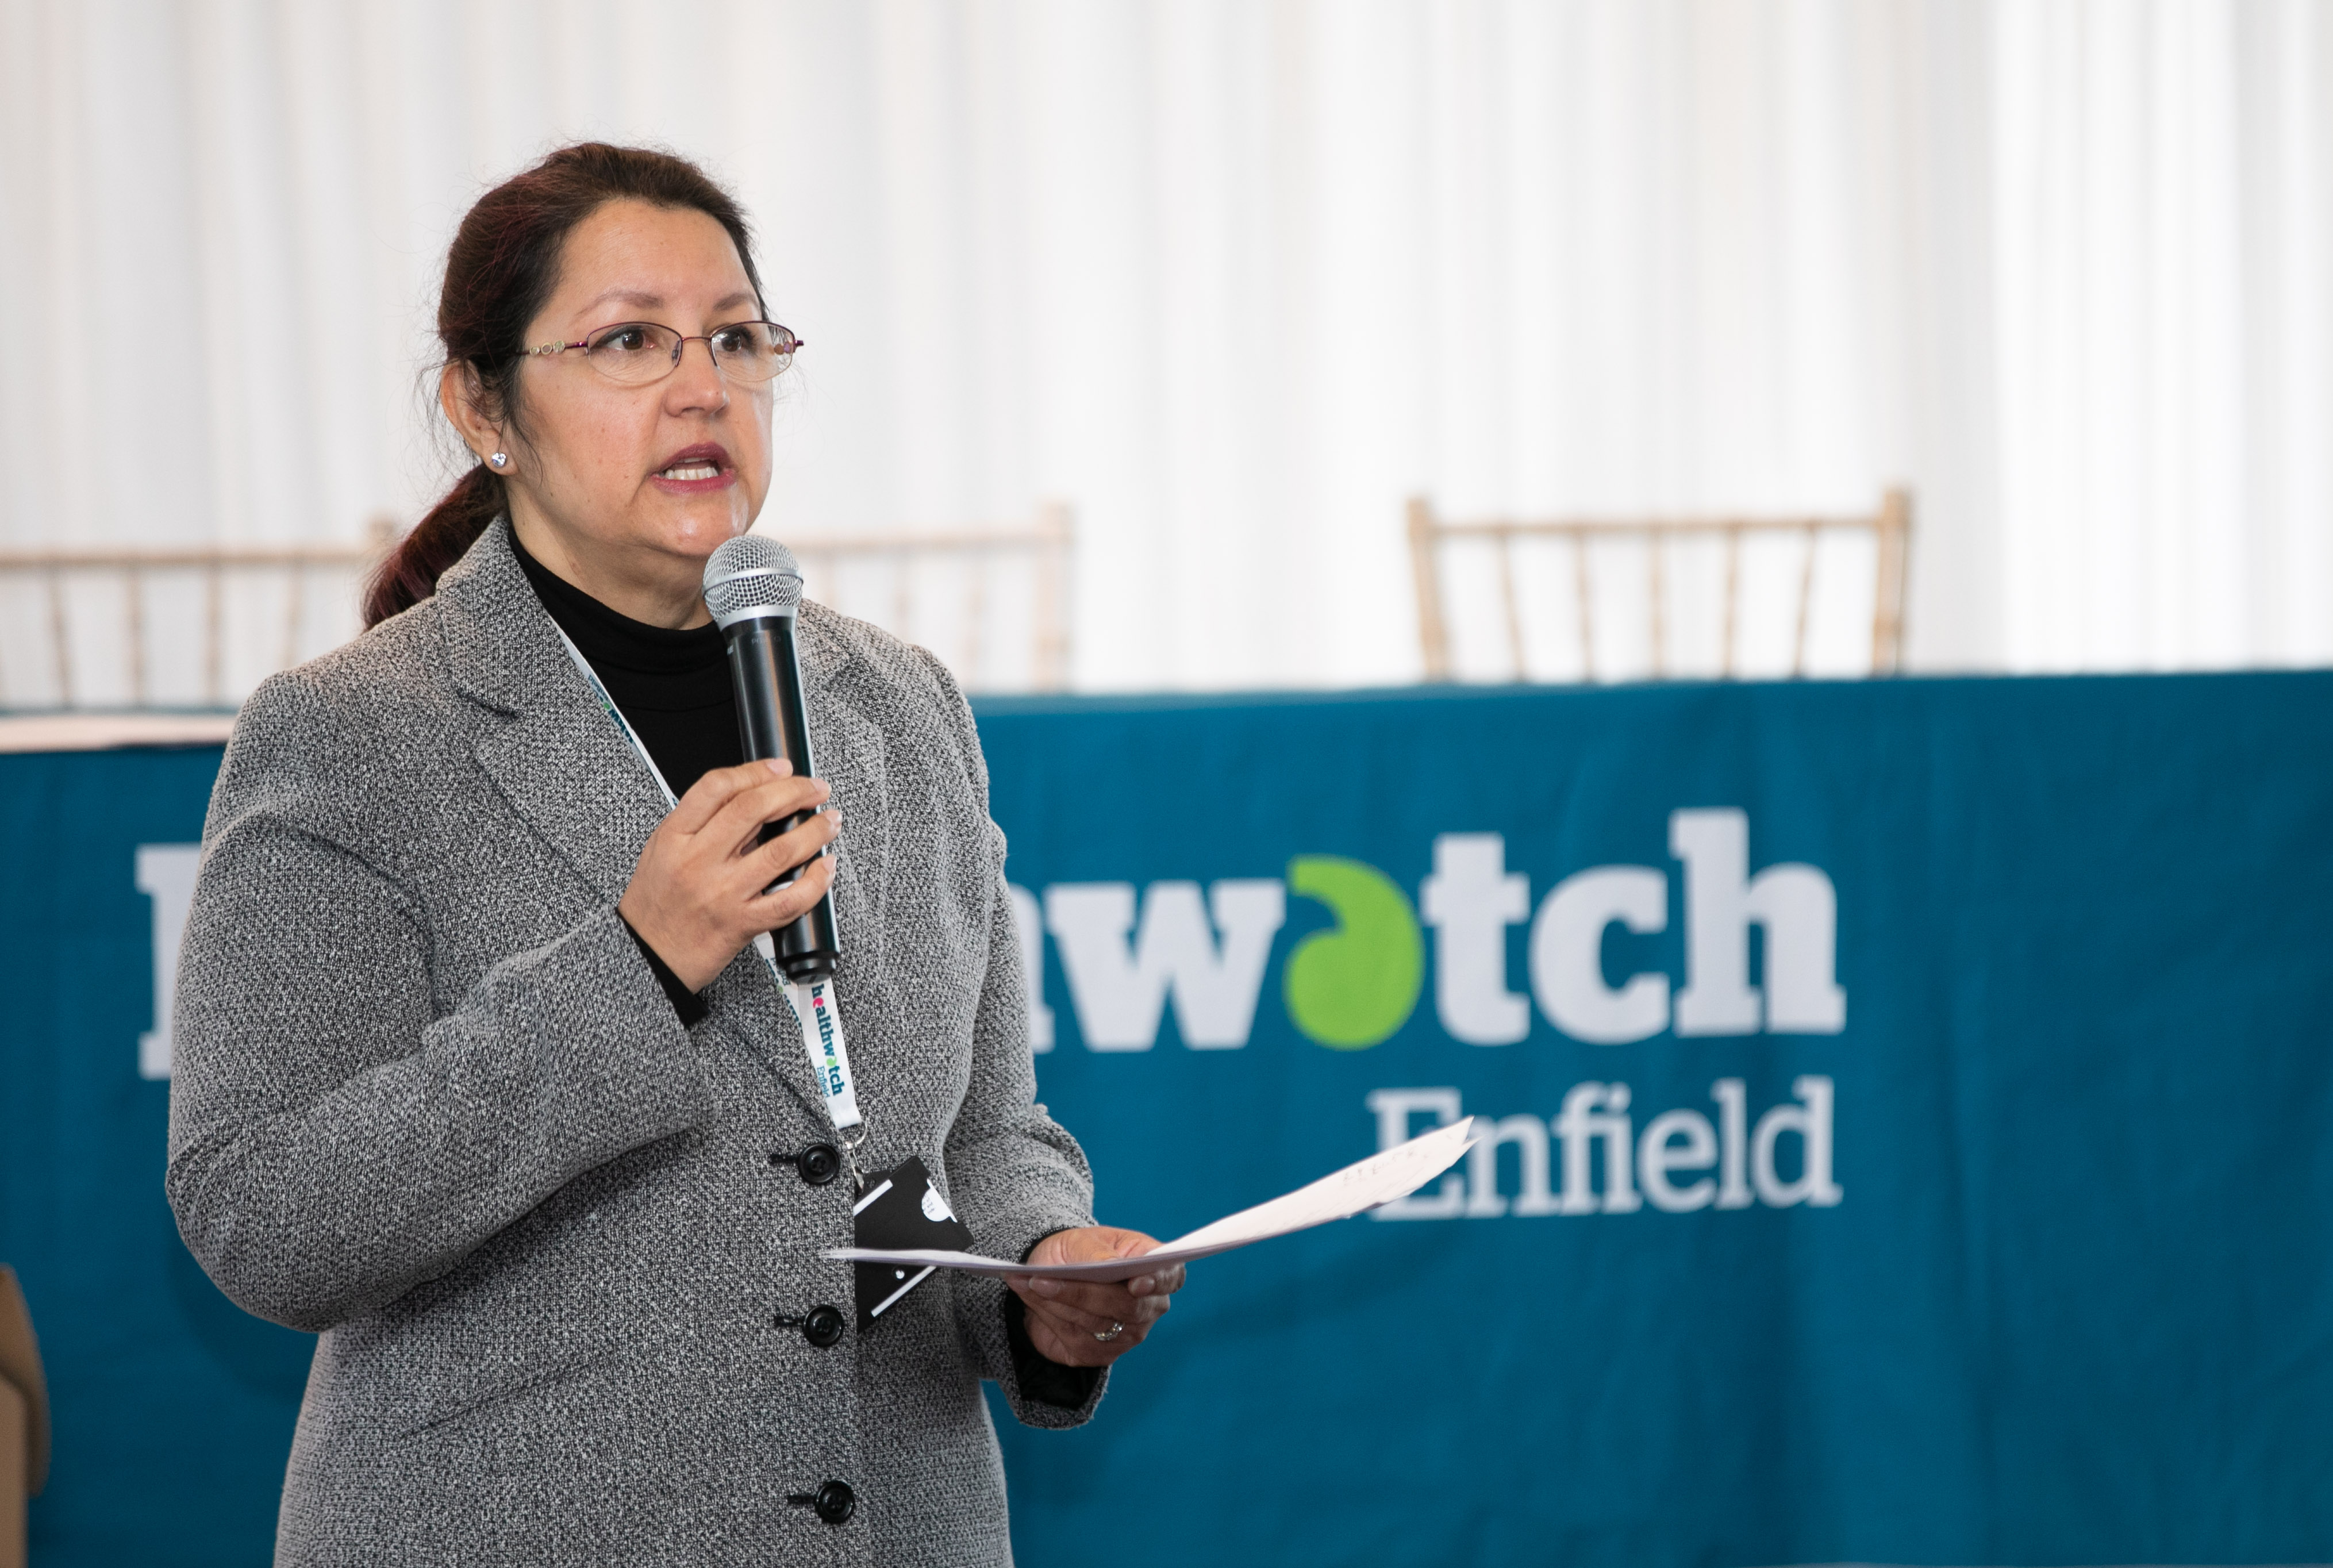 Healthwatch Enfield Acting CEO talking at annual conference